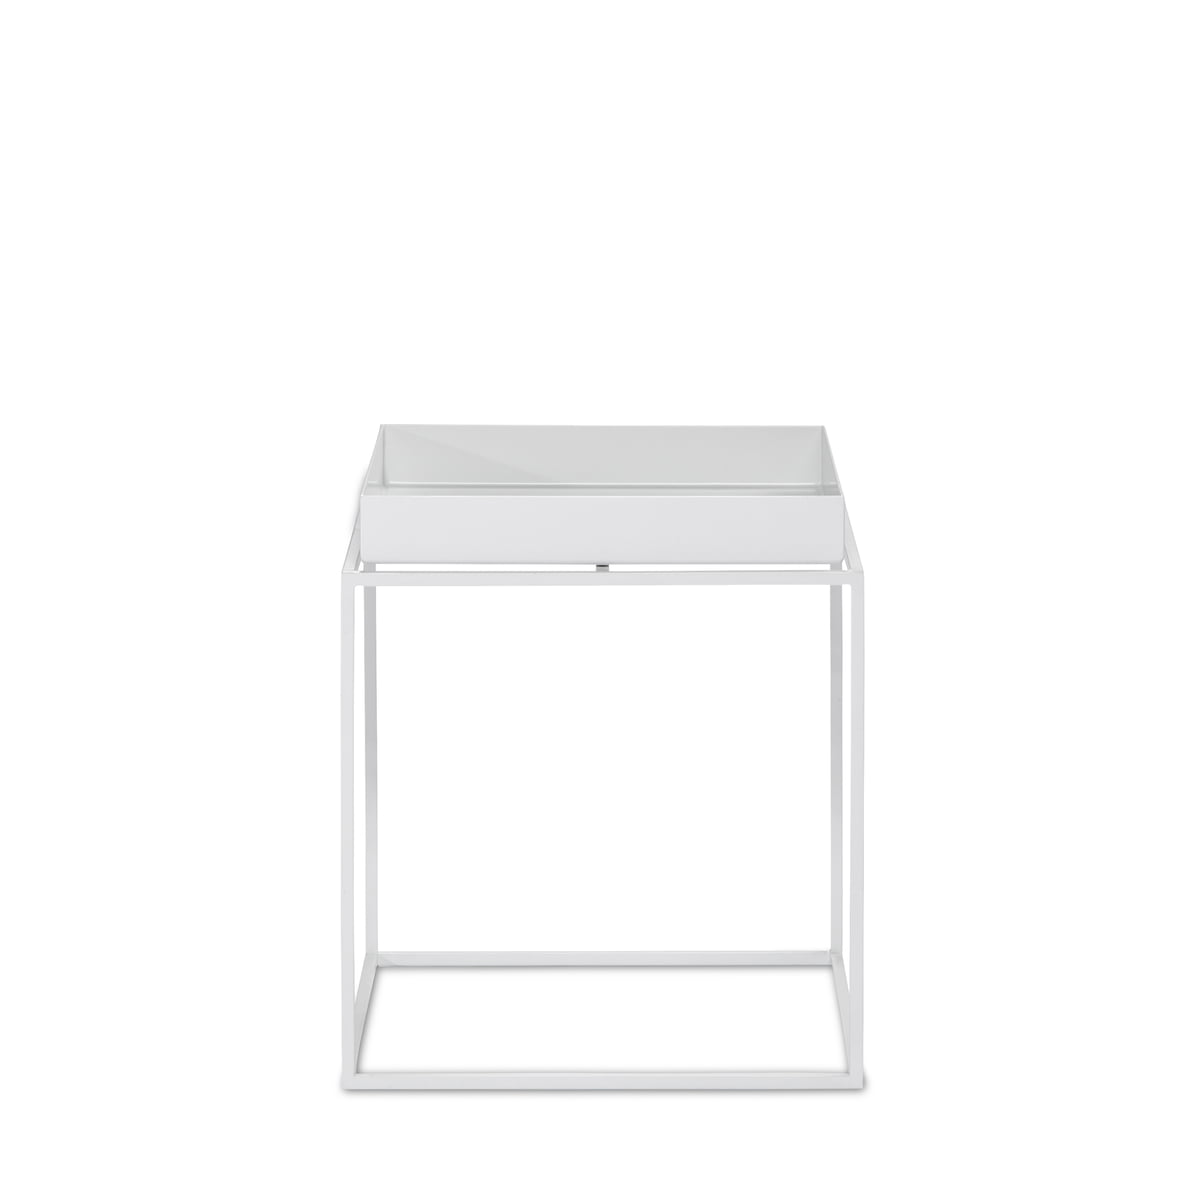 Tray table weiss 30x30 frei